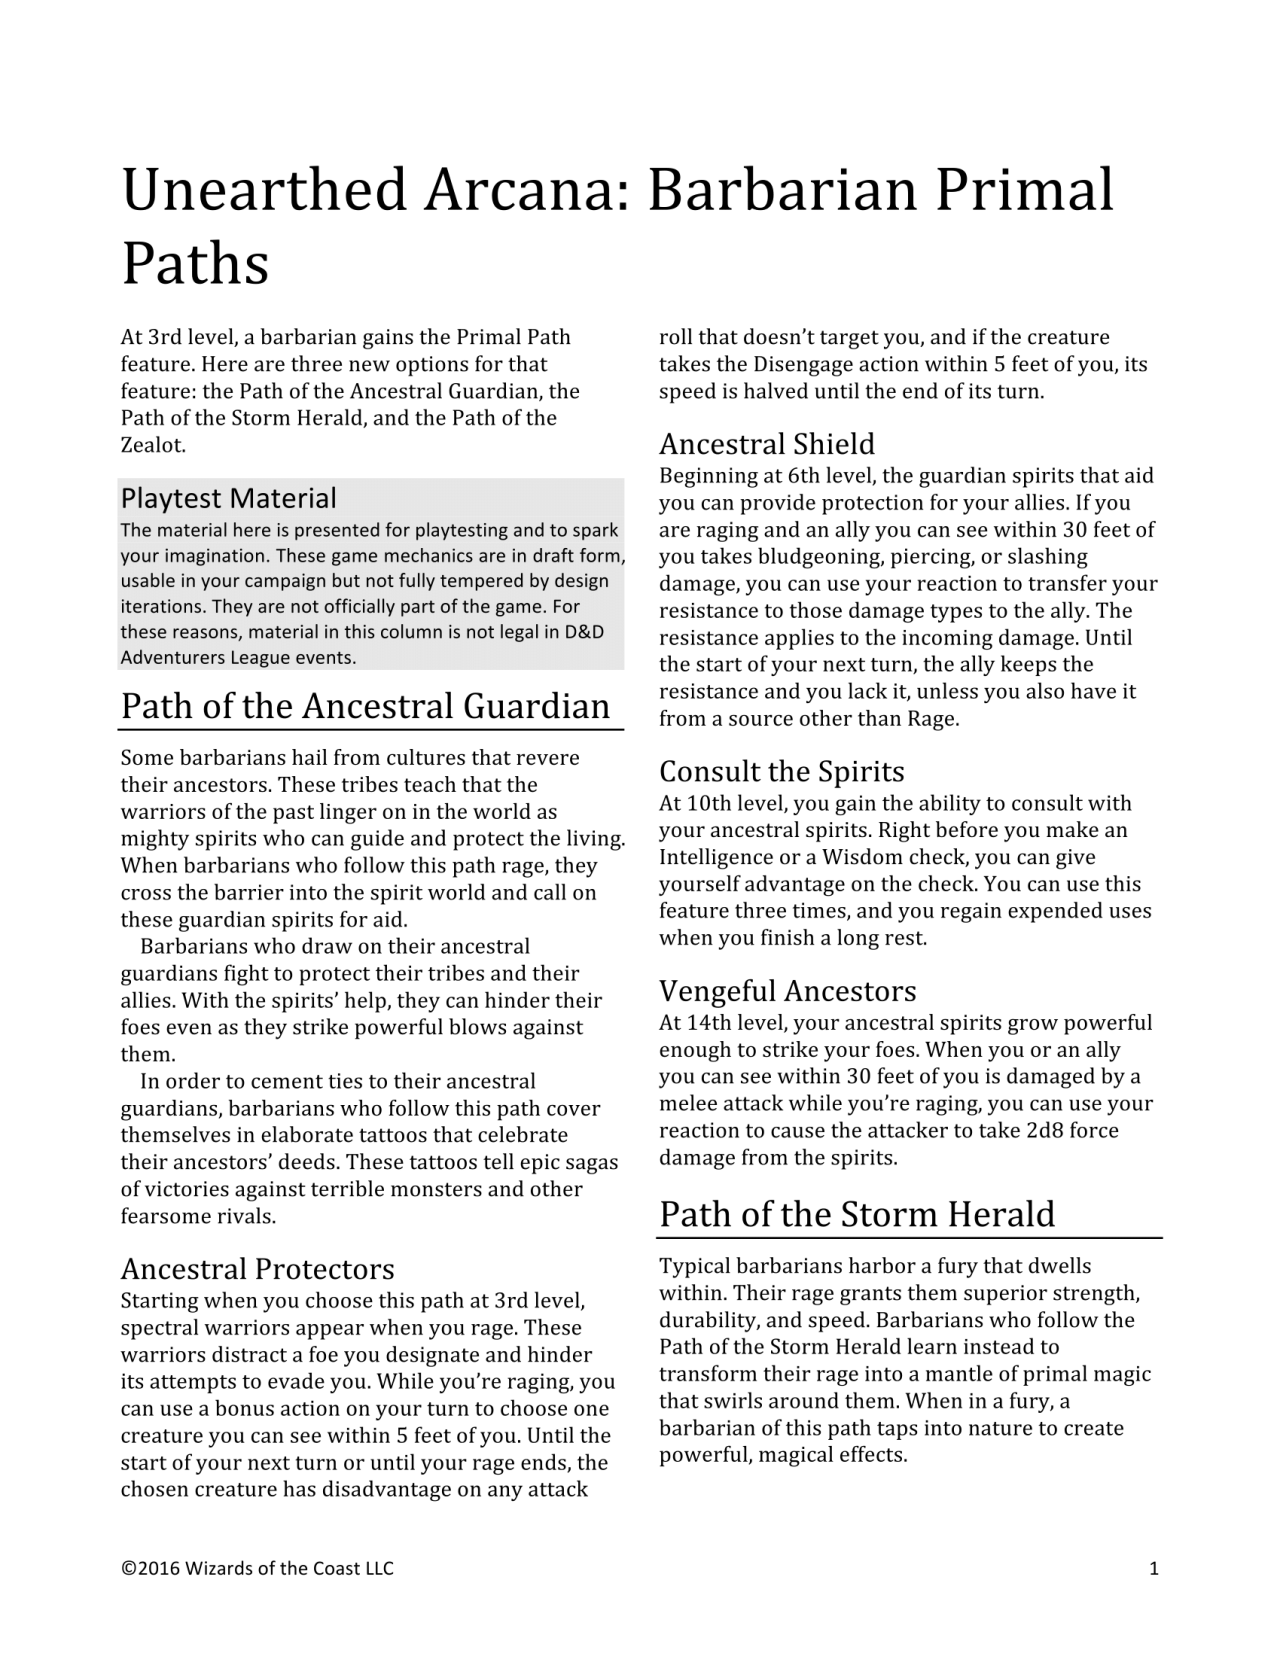 DnD 5e Homebrew — Unearthed Arcana Barbarian Primal Paths